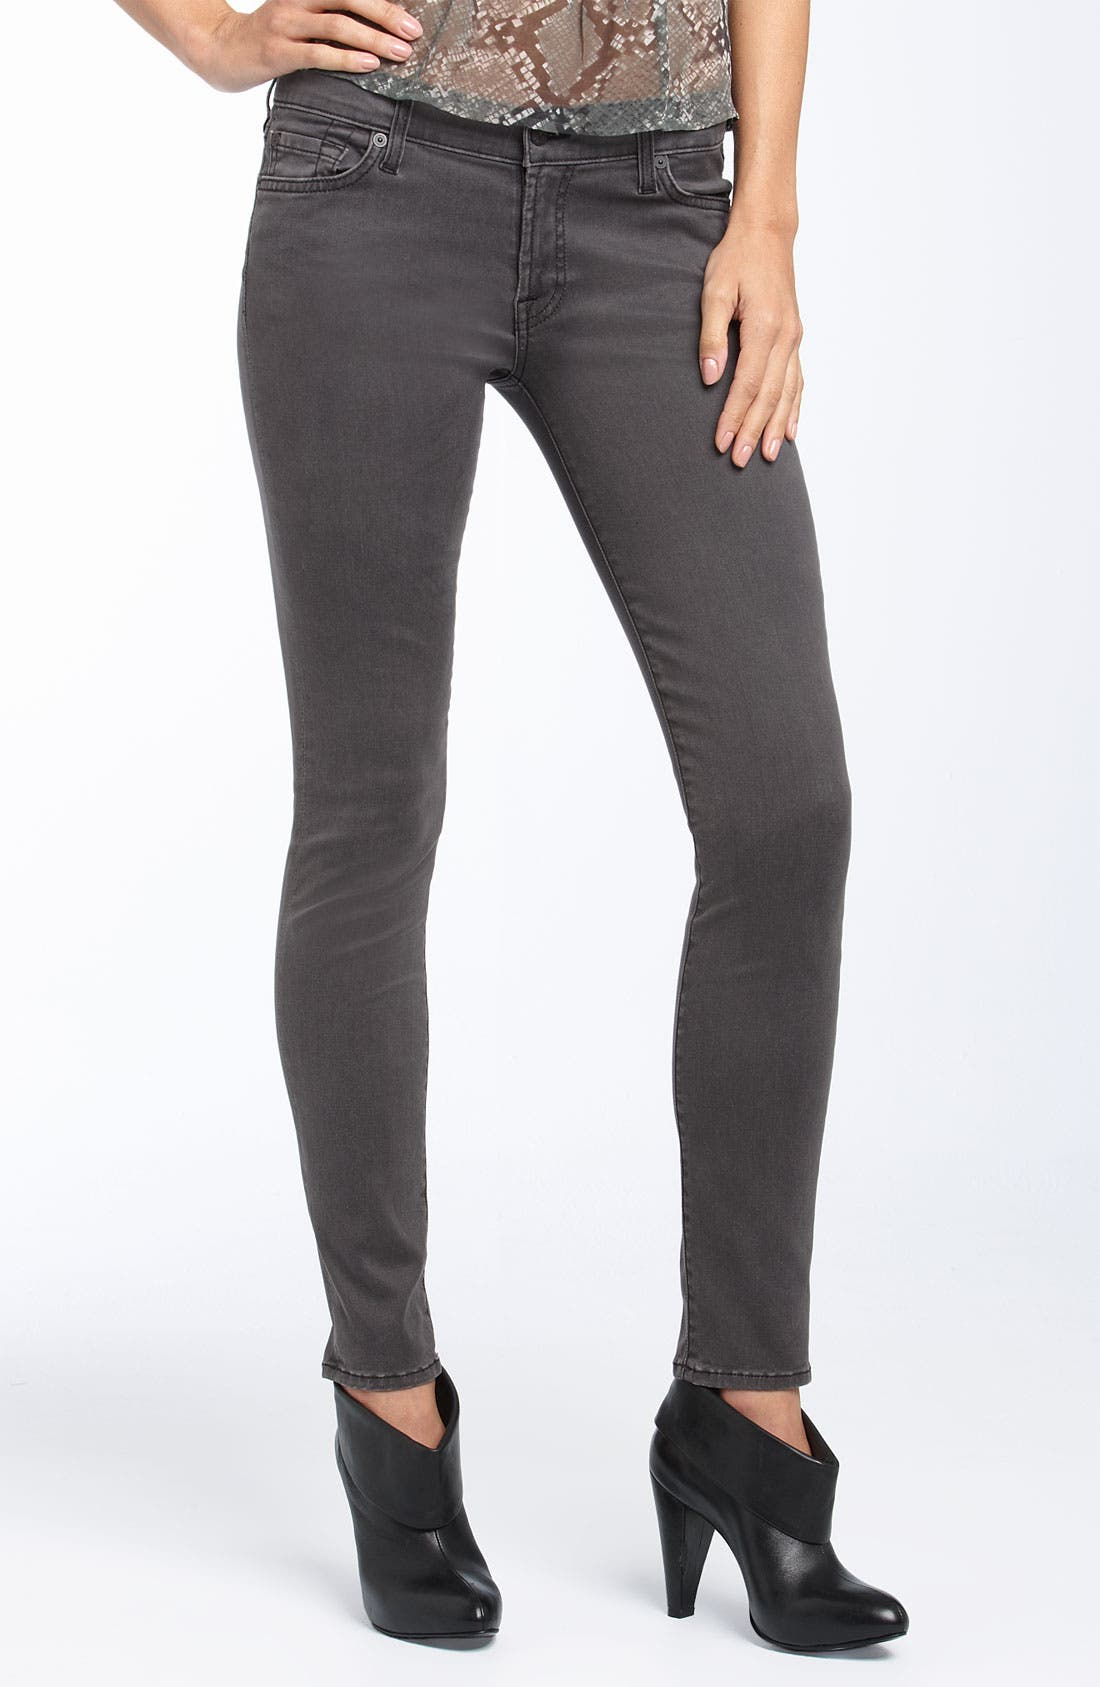 'Gwenevere' Skinny Stretch Jeans,                             Alternate thumbnail 2, color,                             020